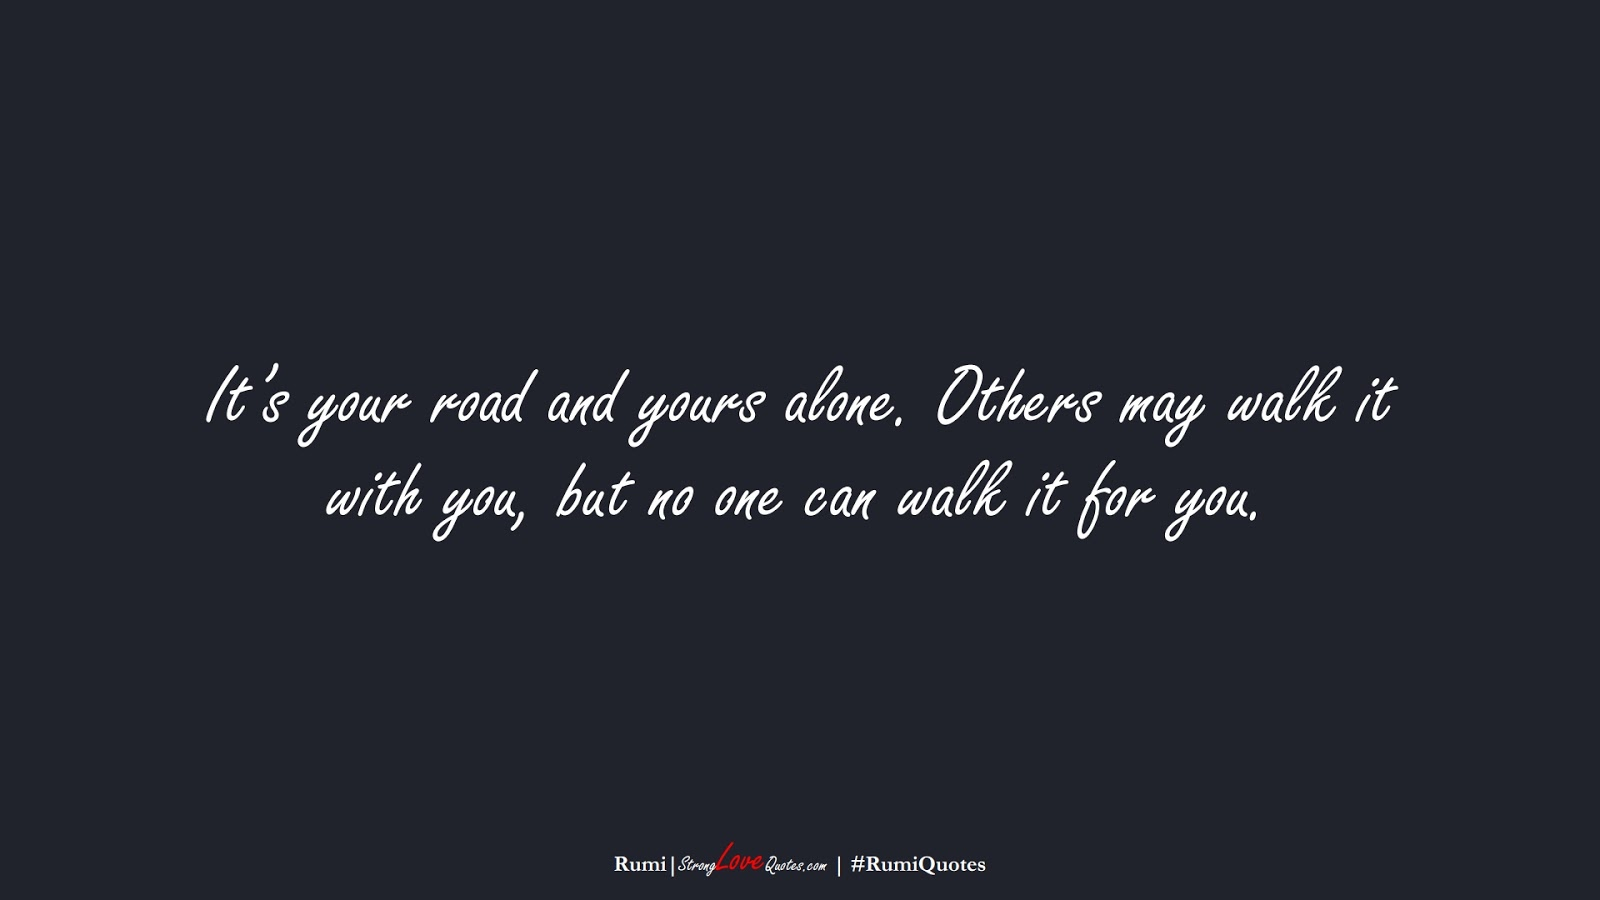 It's your road and yours alone. Others may walk it with you, but no one can walk it for you. (Rumi);  #RumiQuotes